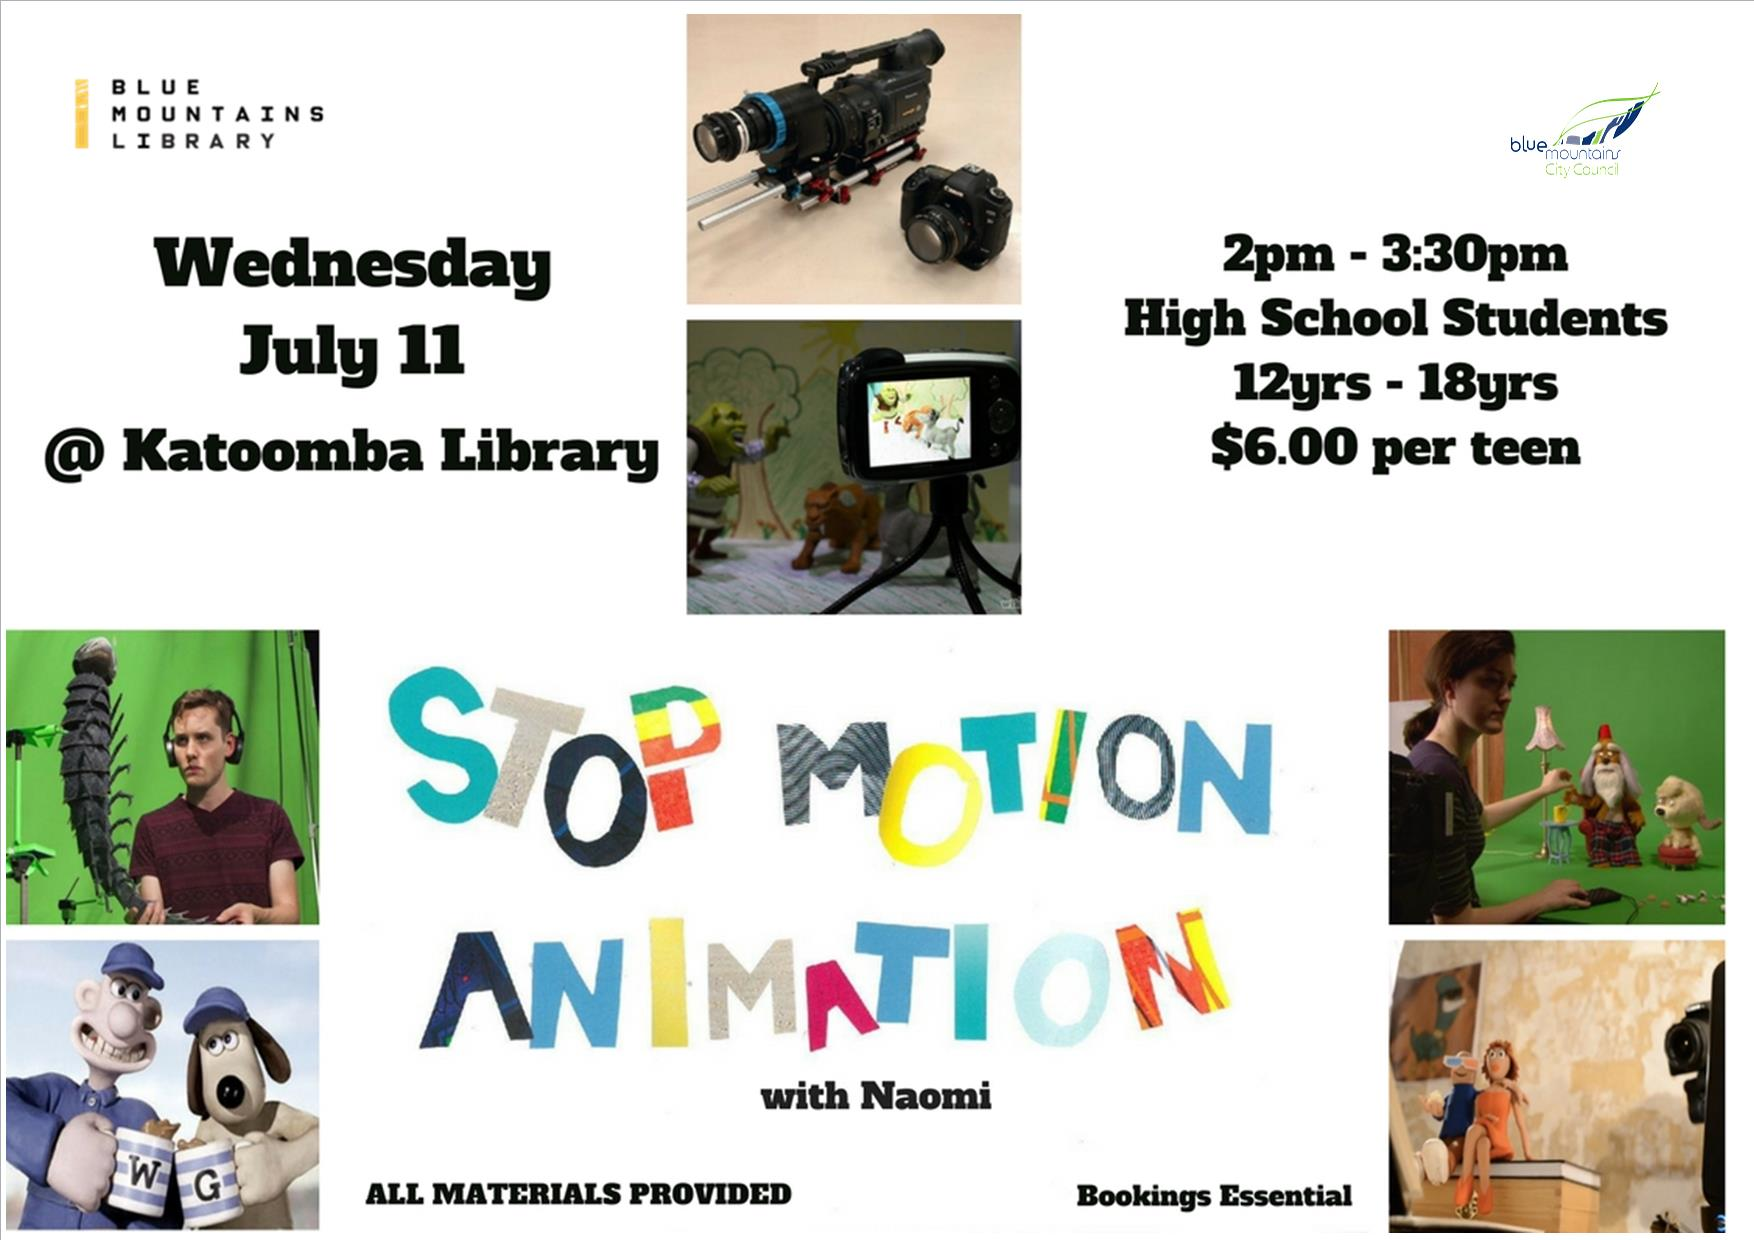 Stop-motion Animation, Katoomba Library, Wednesday 11th July, 2-3:30pm, 12-18yrs $6 per teen